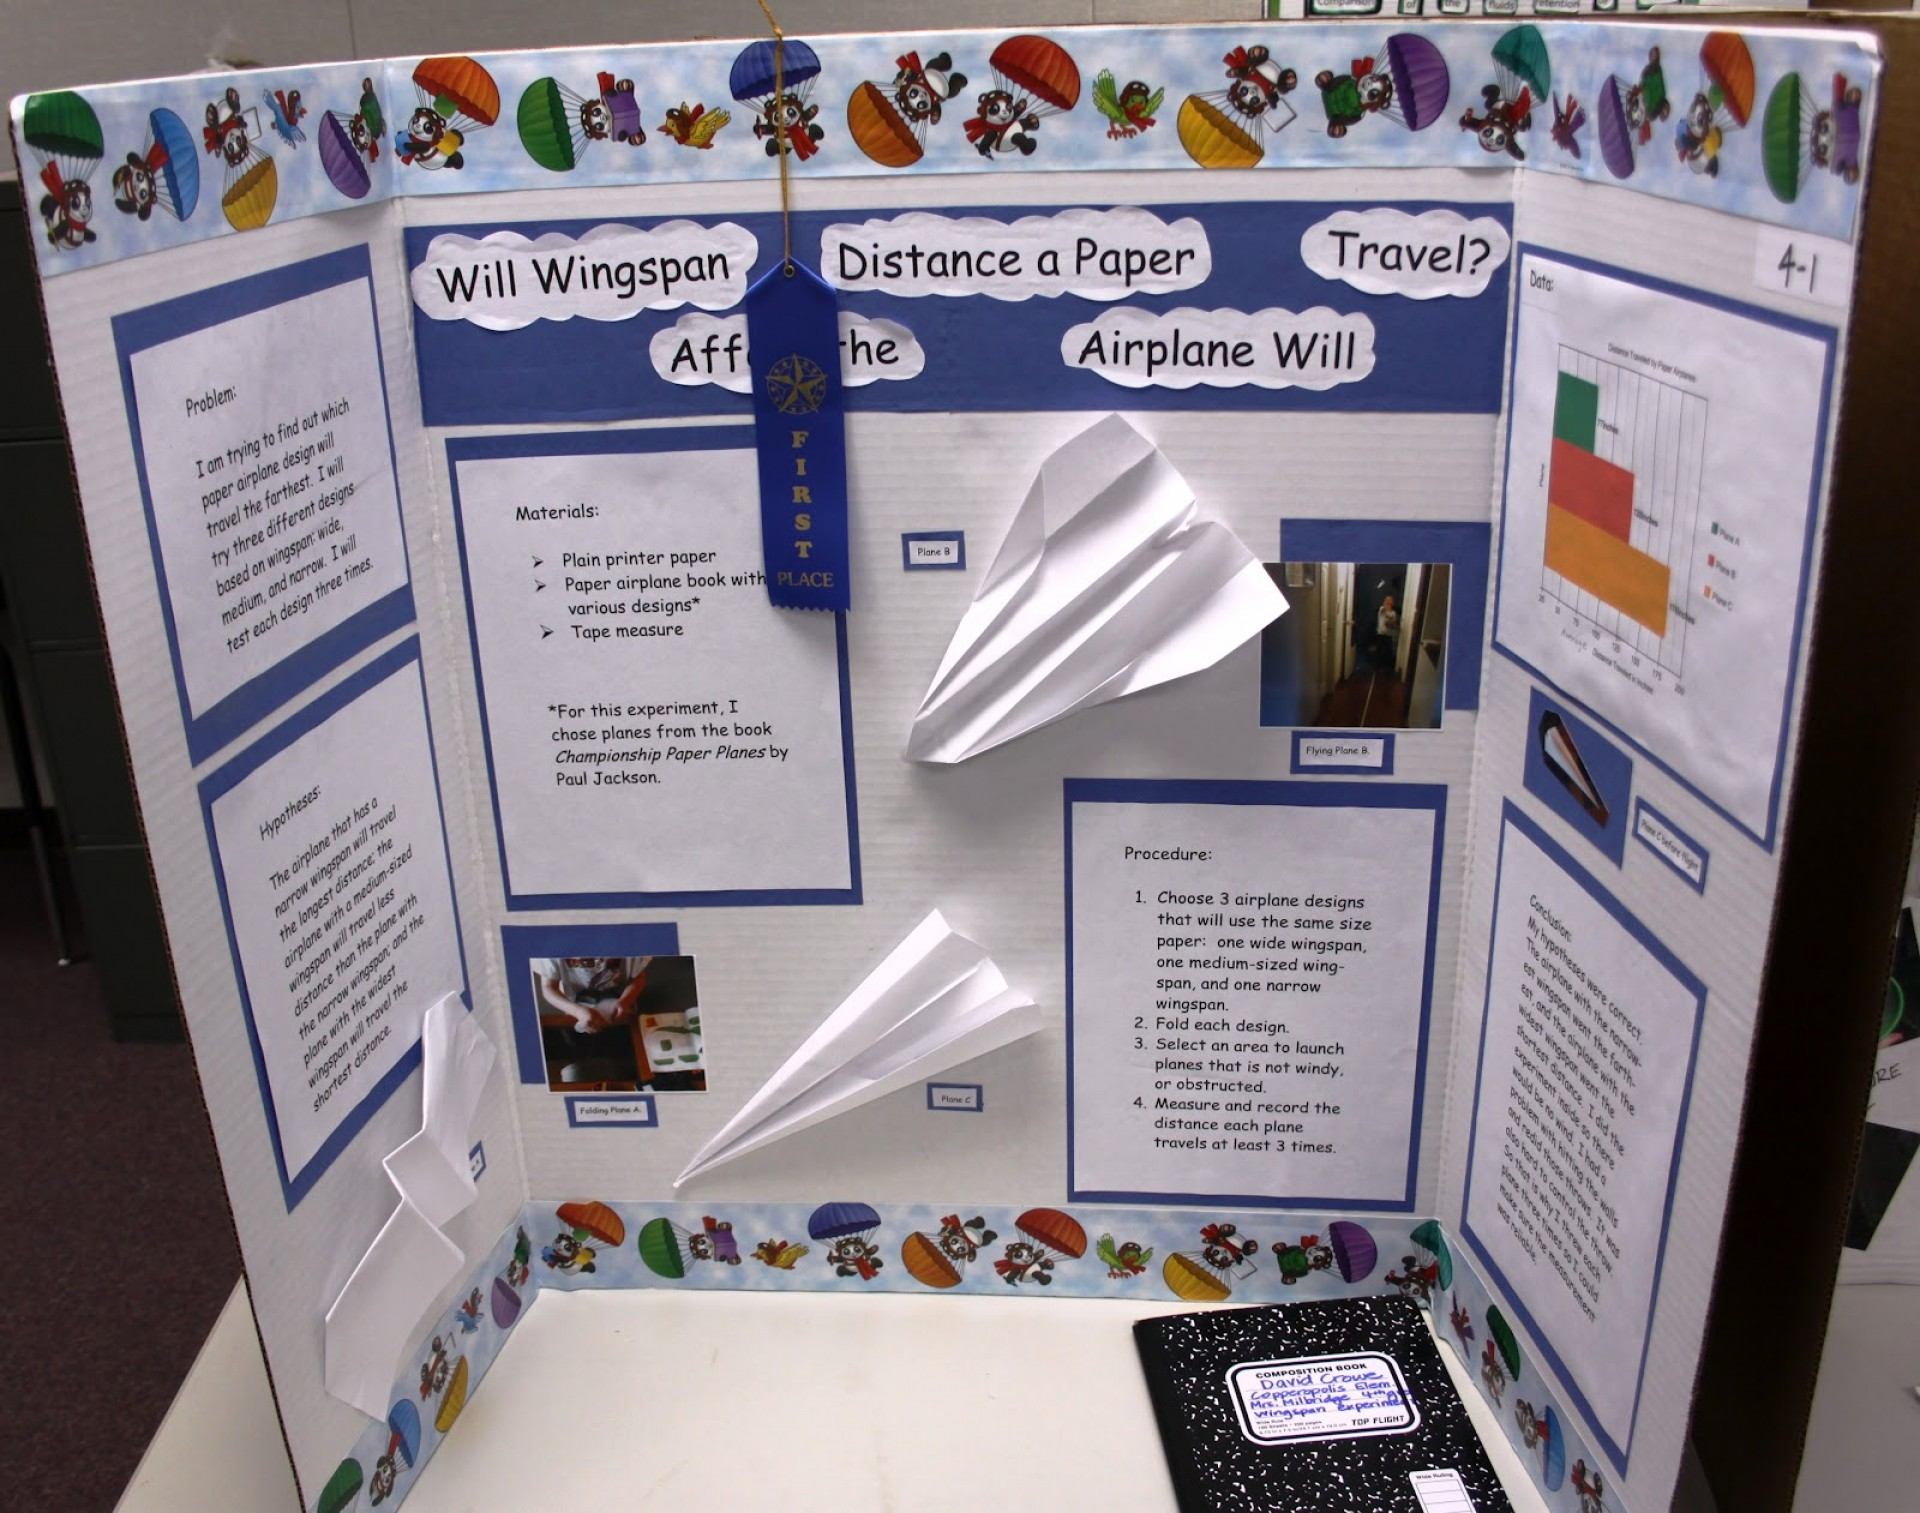 019 Research Paper Middle School Science Fair Template 1st Place Projects For 5th Graders Frightening 1920